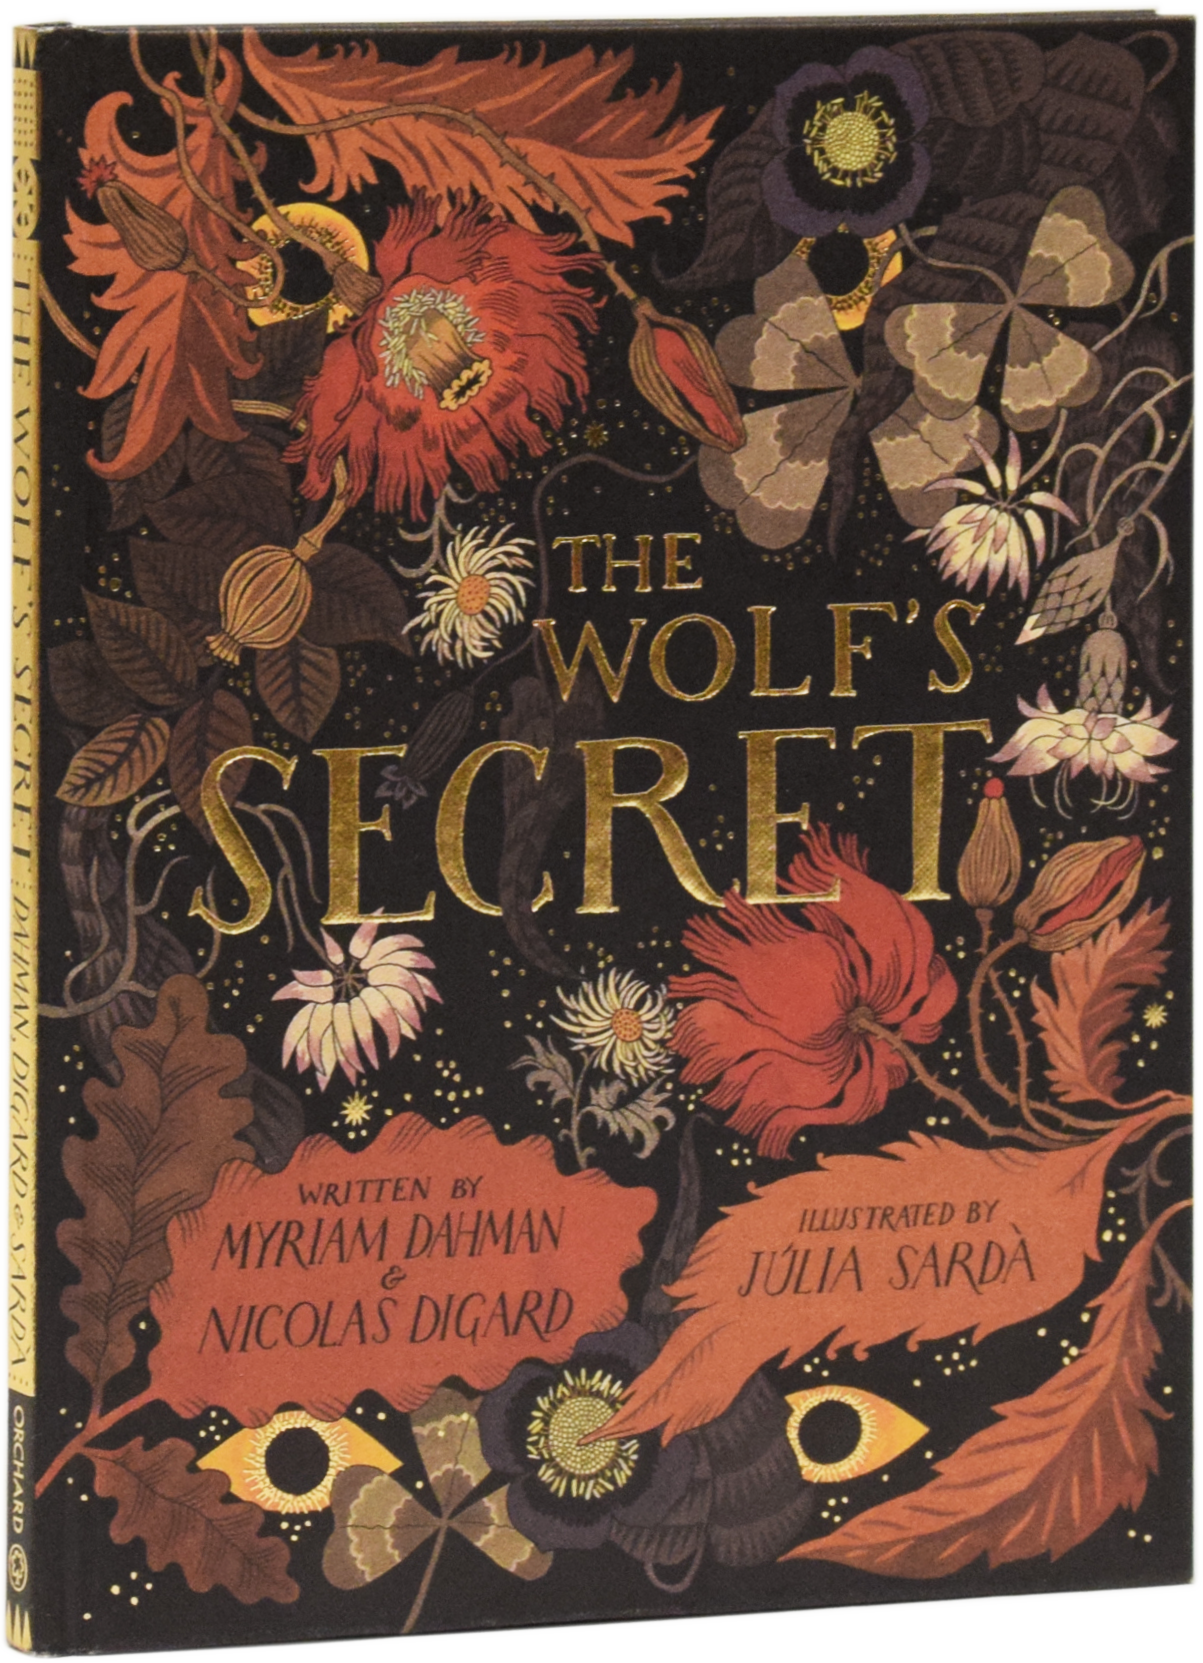 The Wolf's Secret by Nicolas Digard, Myriam Dahman, Julia Sarda Portabella